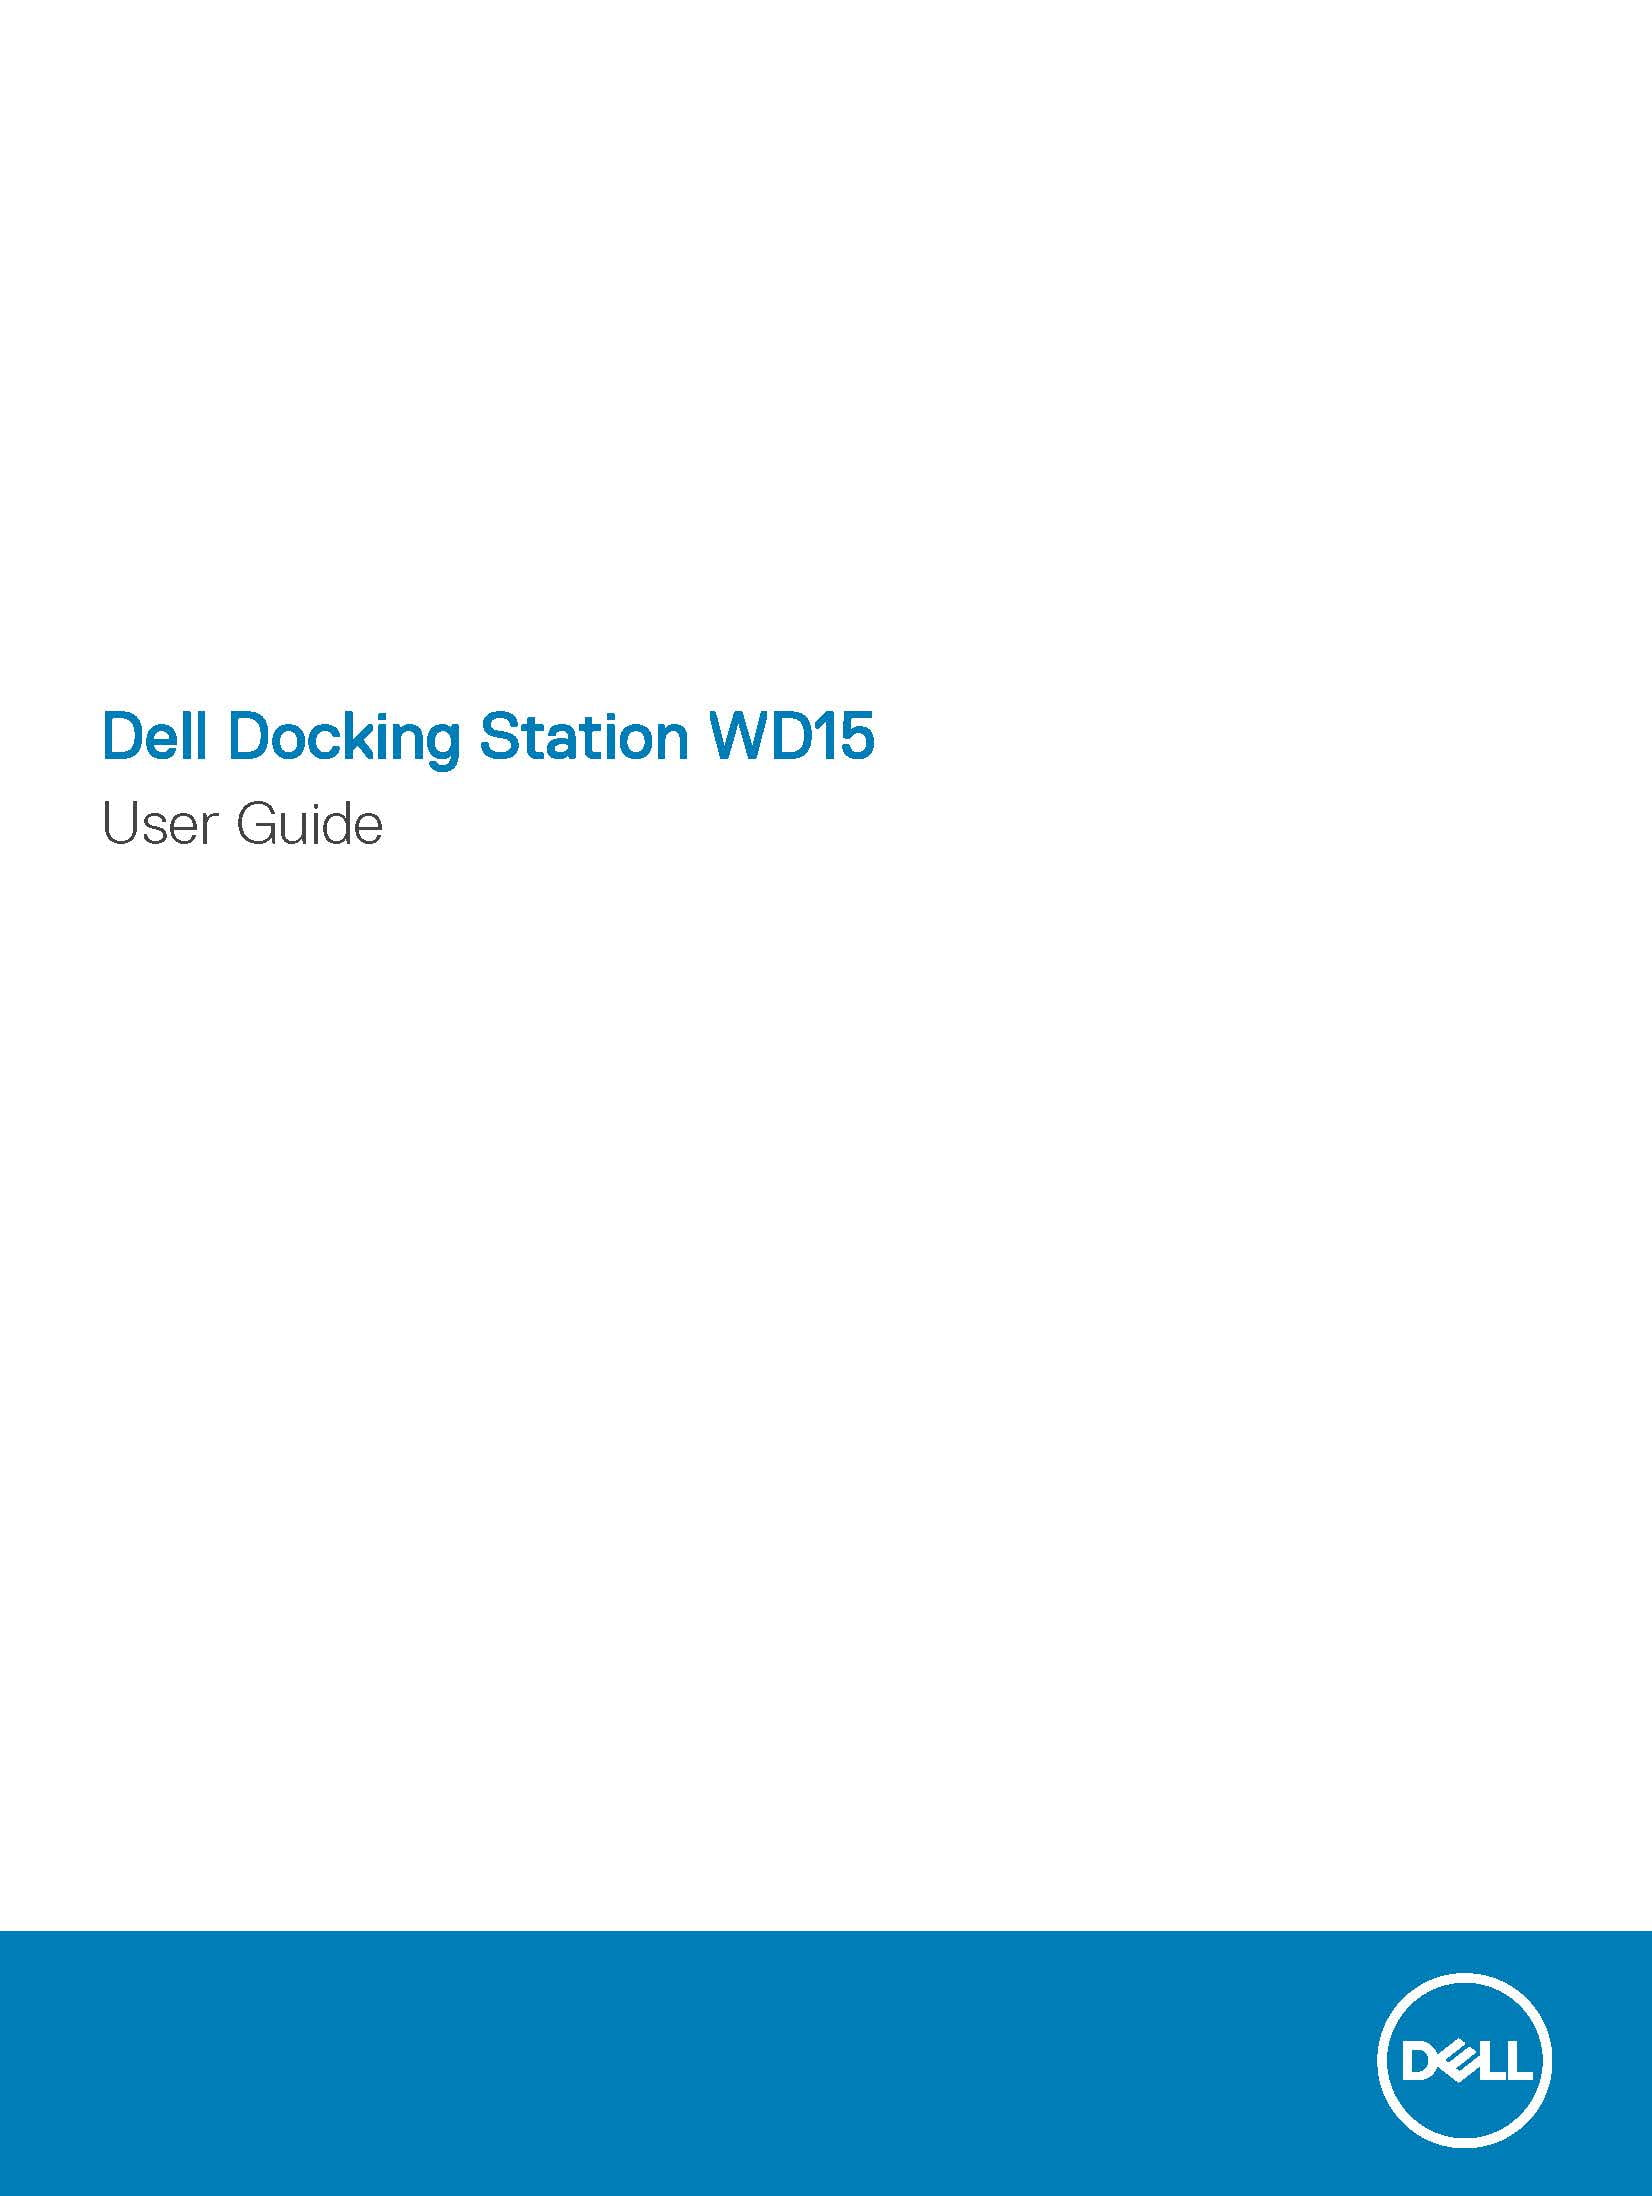 dell dock wd15 users guide en us Page 01